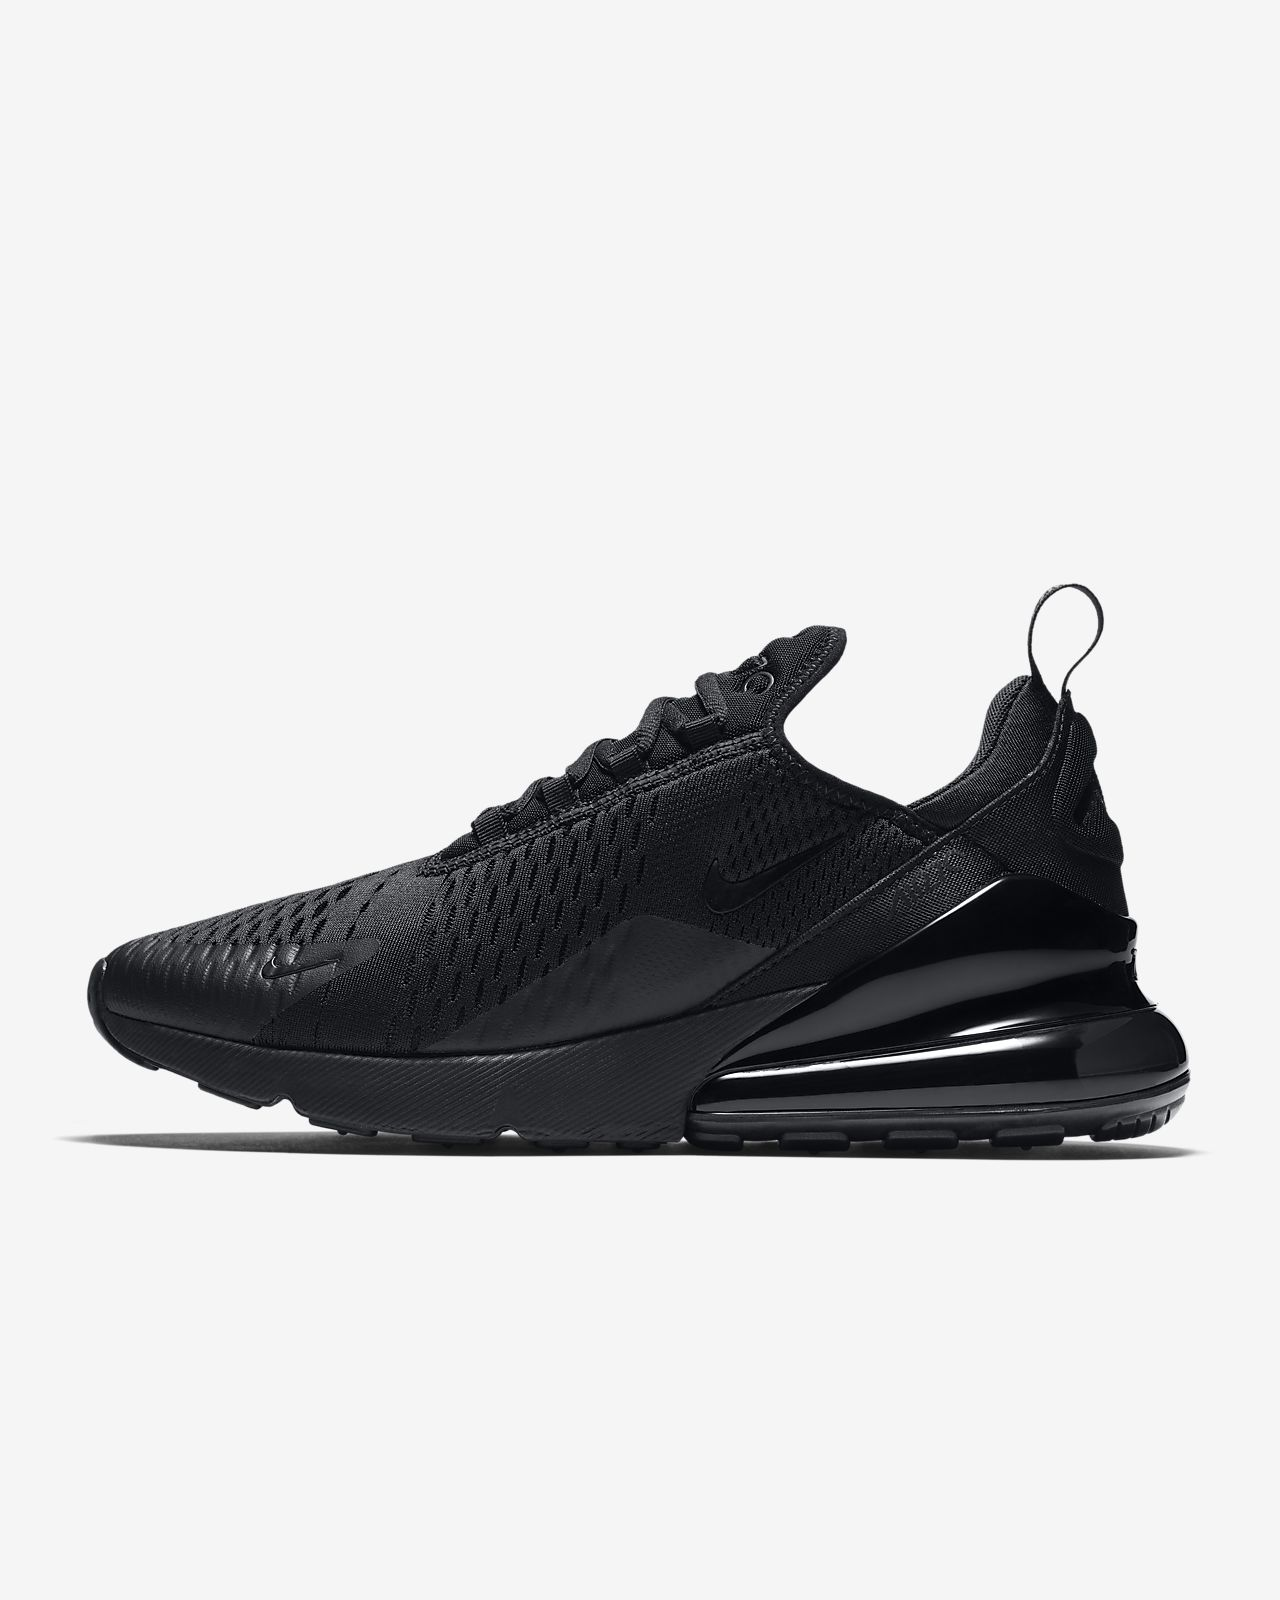 2092c3379 Nike Air Max 270 Men's Shoe. Nike.com AU